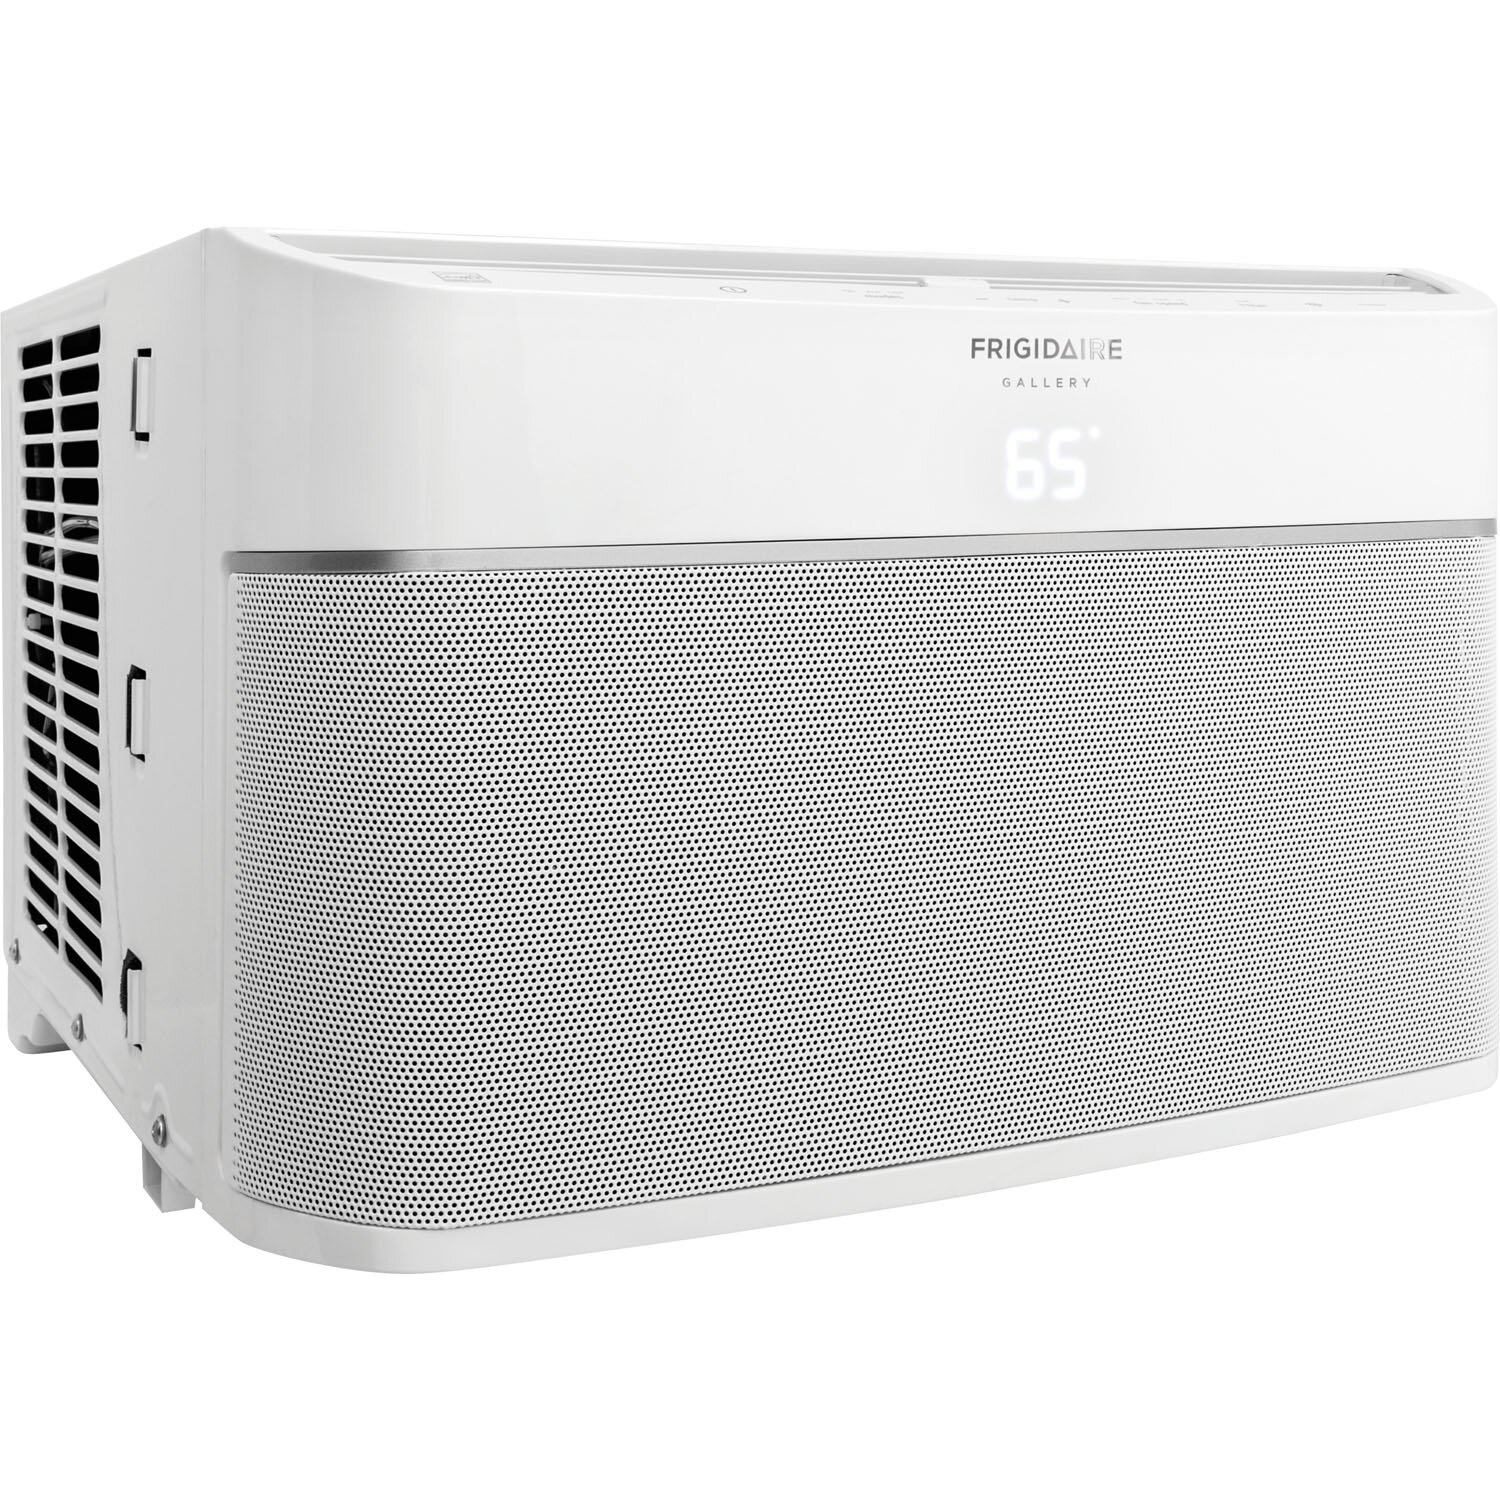 #161616 Frigidaire 8 000 BTU Energy Star Window Air Conditioner  Highly Rated 11889 Energy Star Rating For Air Conditioners wallpapers with 1500x1500 px on helpvideos.info - Air Conditioners, Air Coolers and more